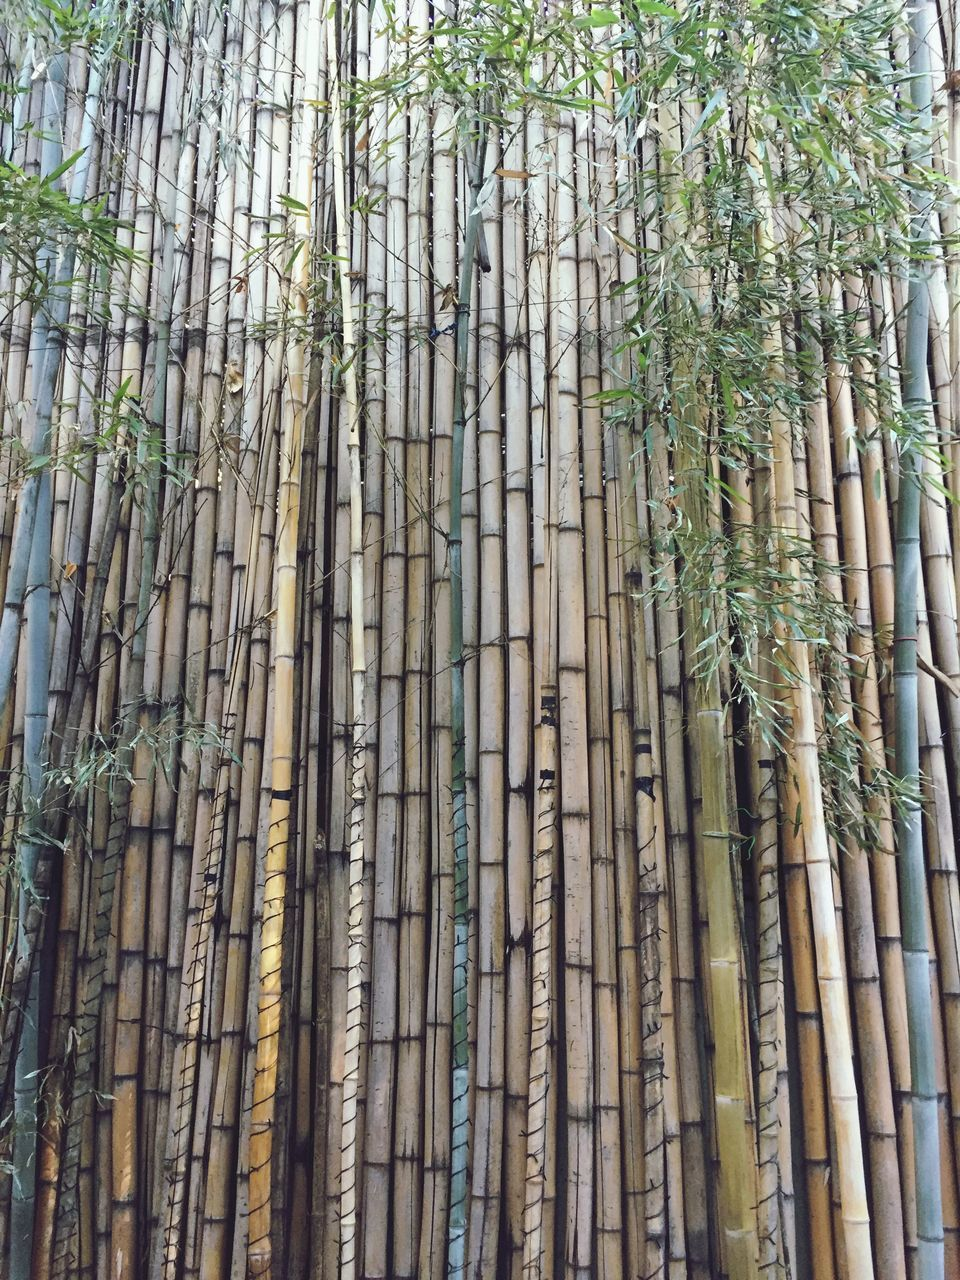 LOW ANGLE VIEW OF BAMBOO PLANTS